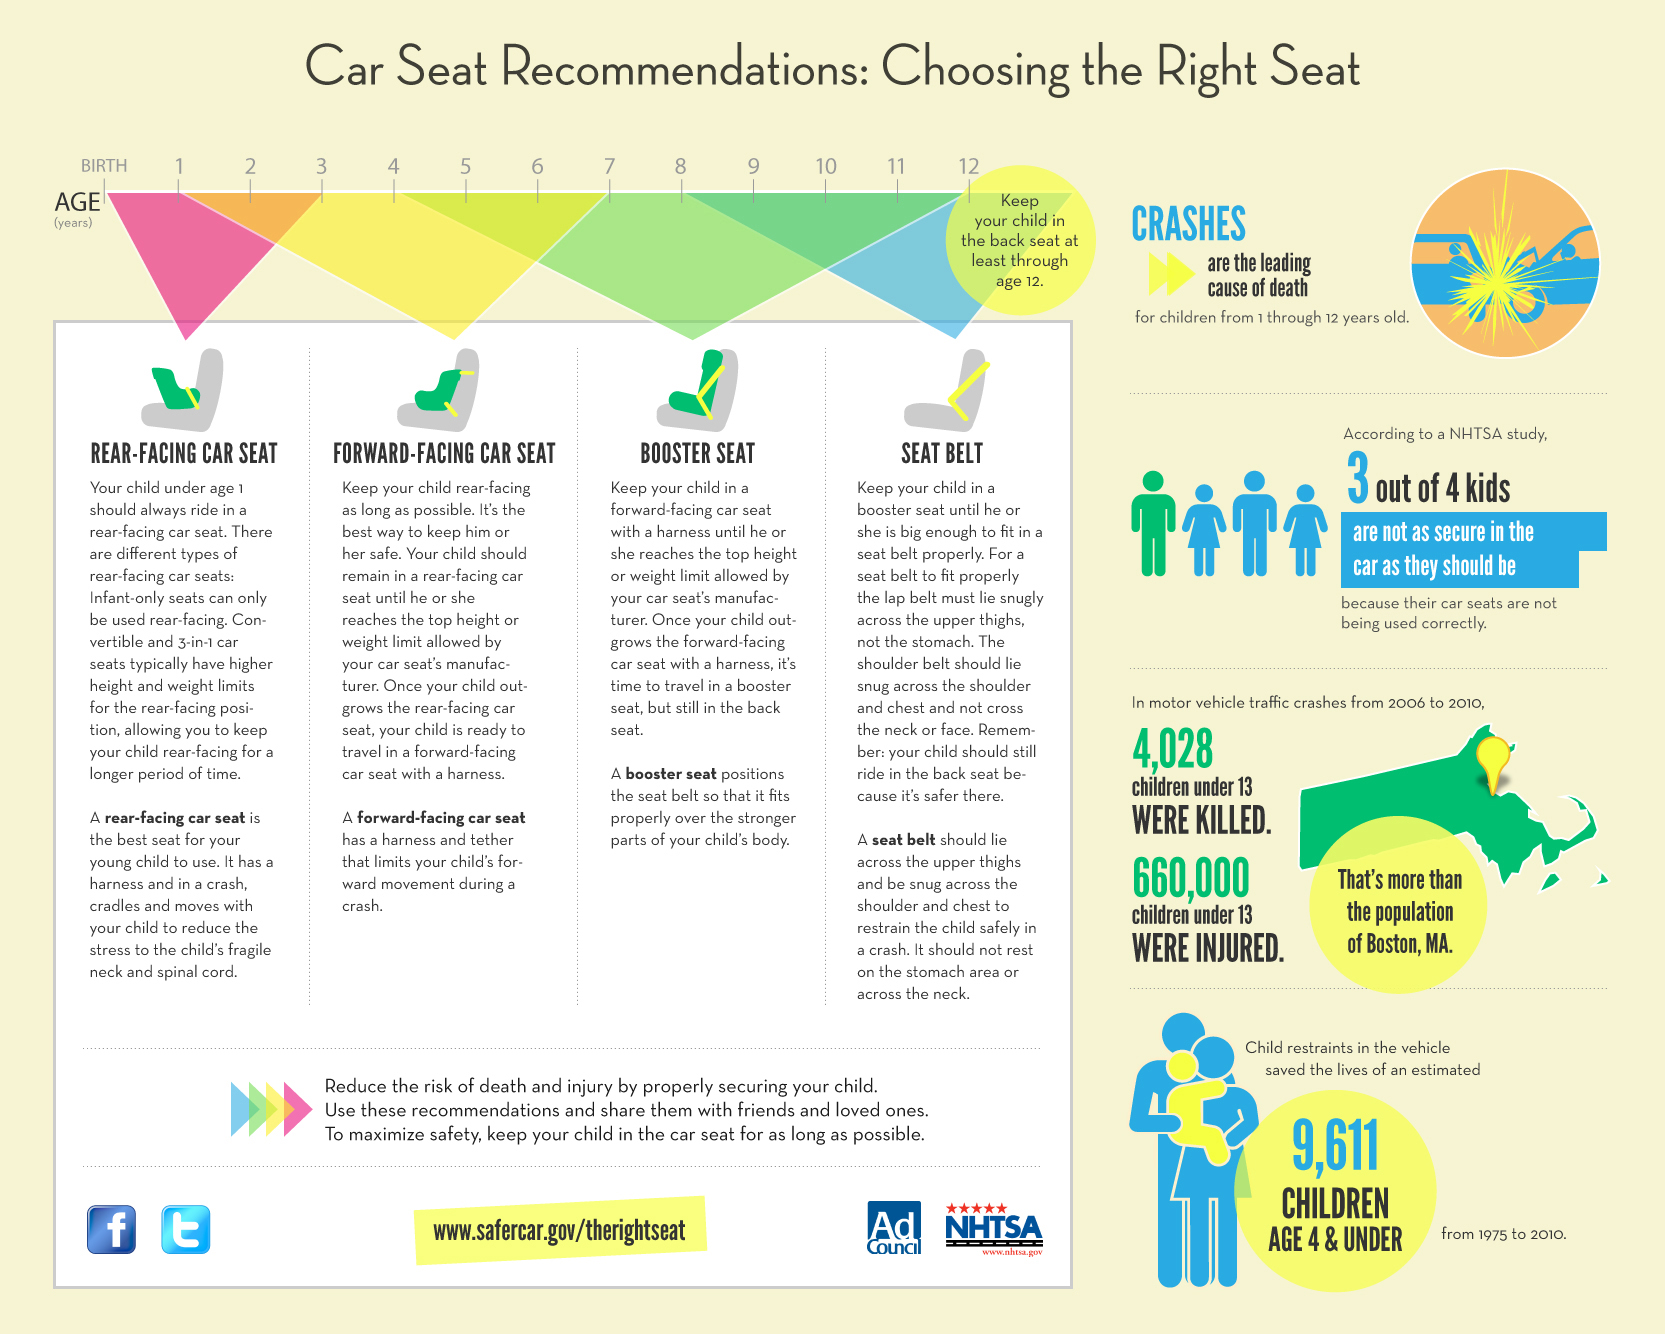 Buckle Up Child Seat Safety Nj Family April 2012